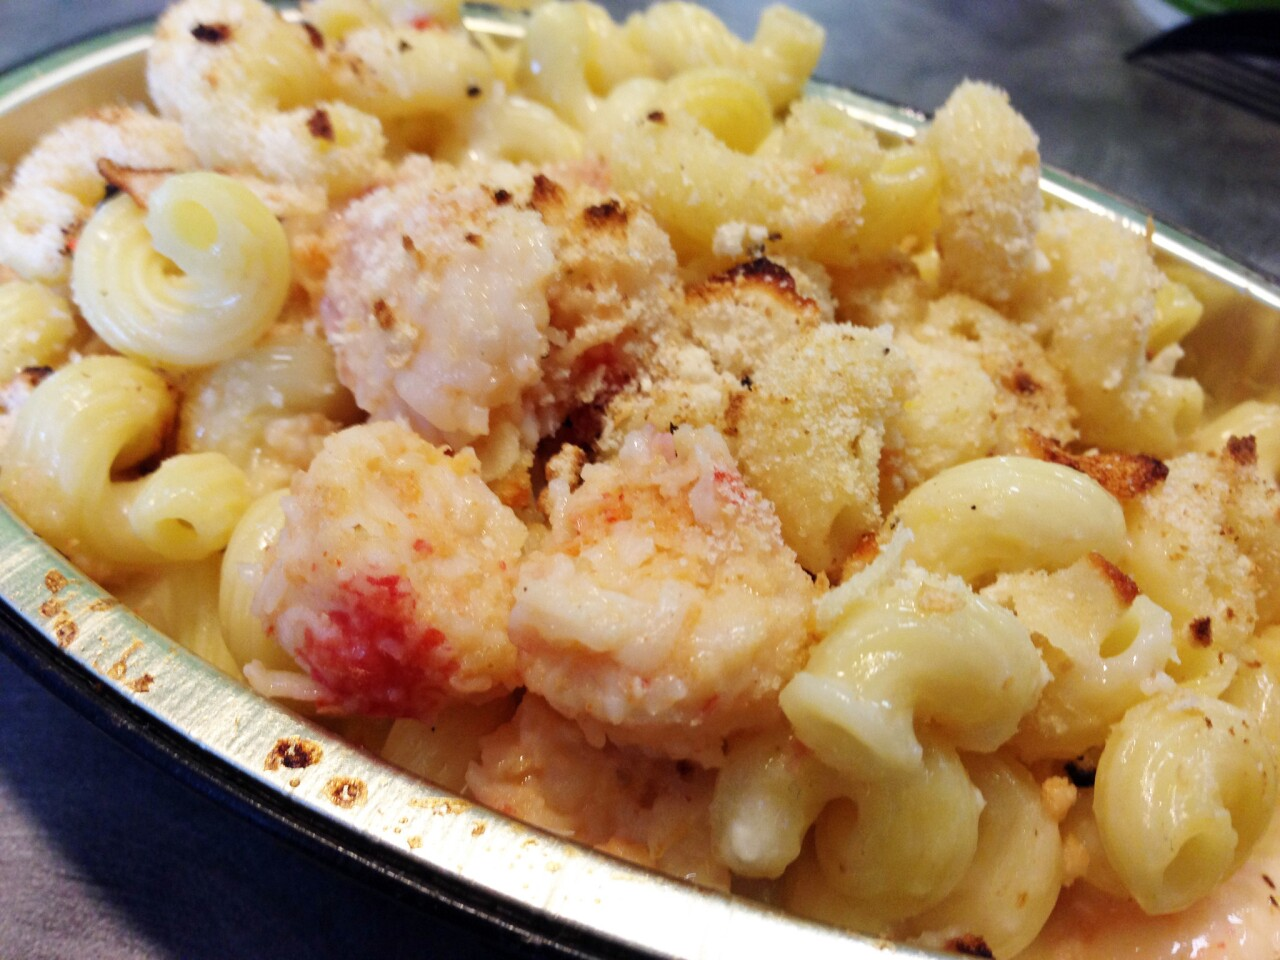 The lobster and seafood mac and cheese.